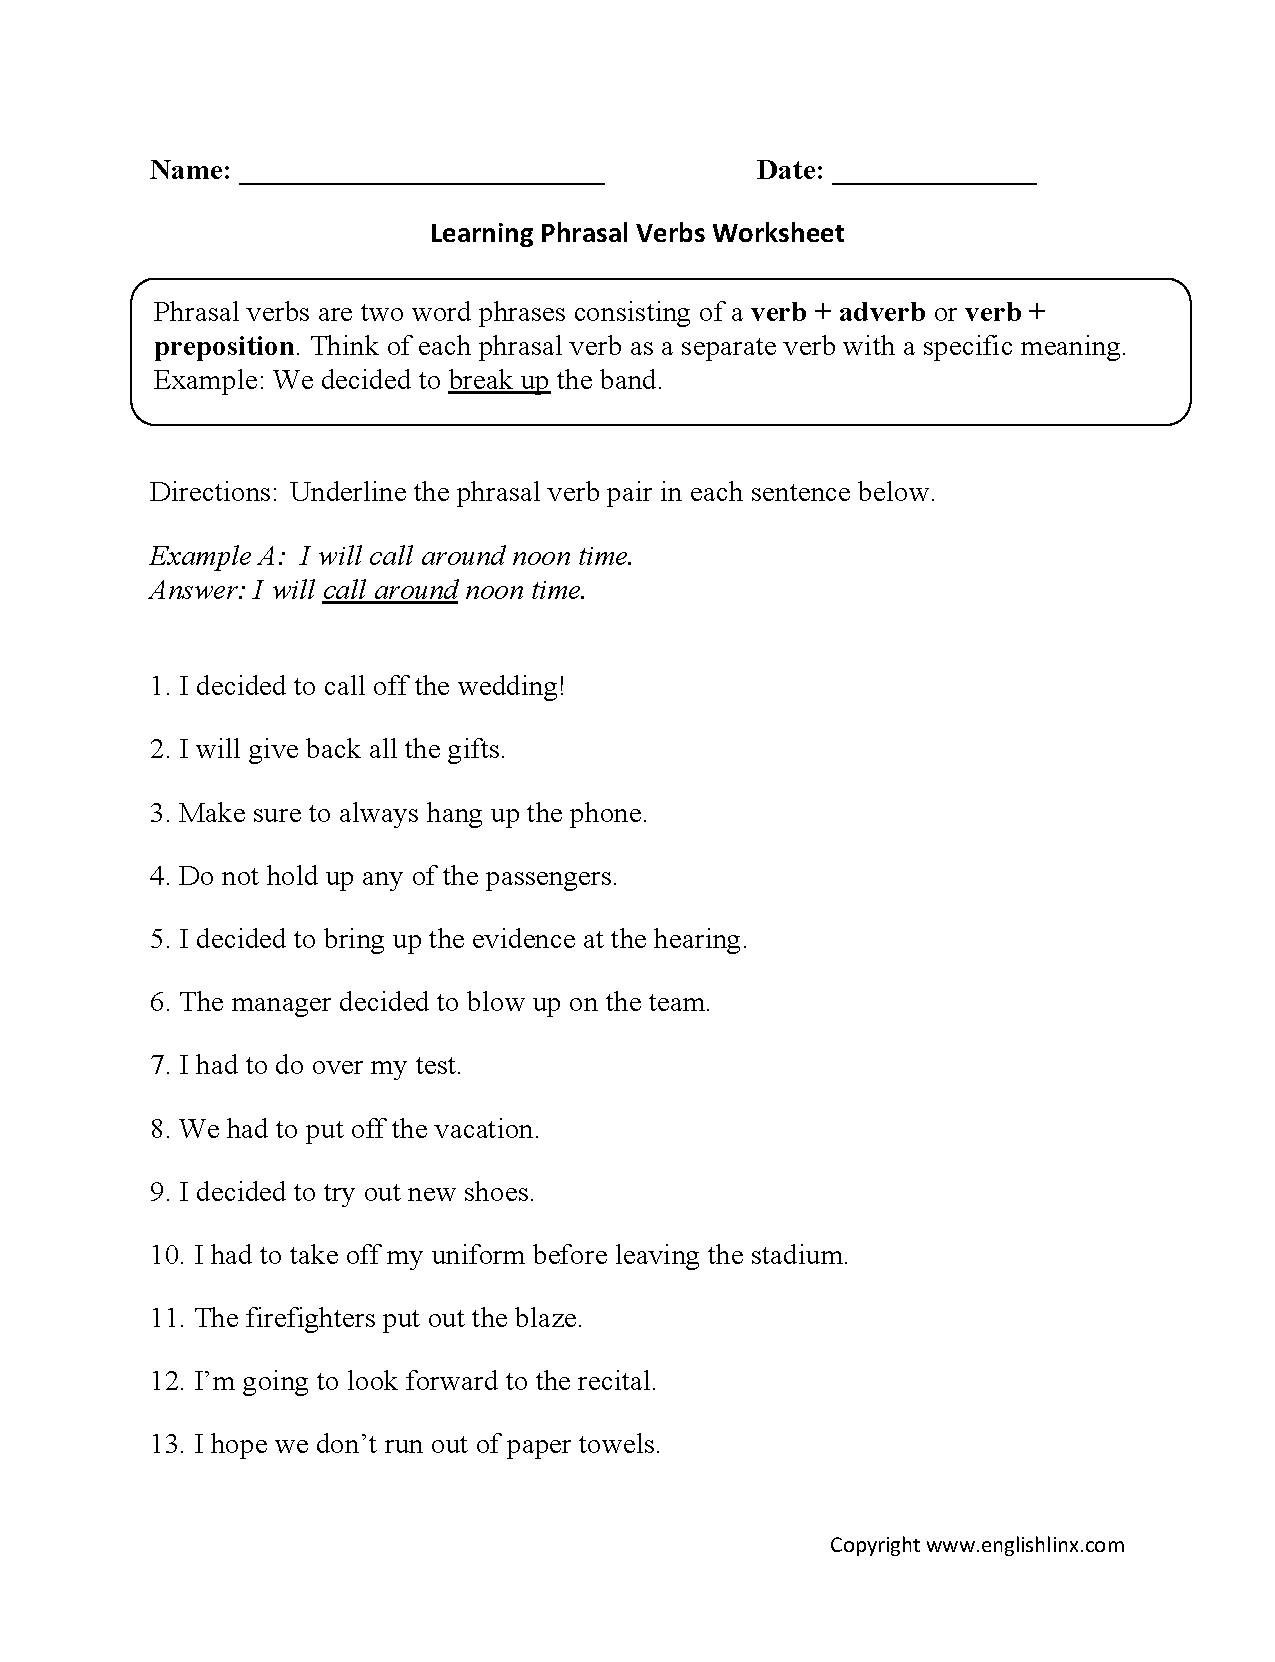 Phrasal Verbs Worksheets 7th Grade English – Main and Helping Verbs Worksheets